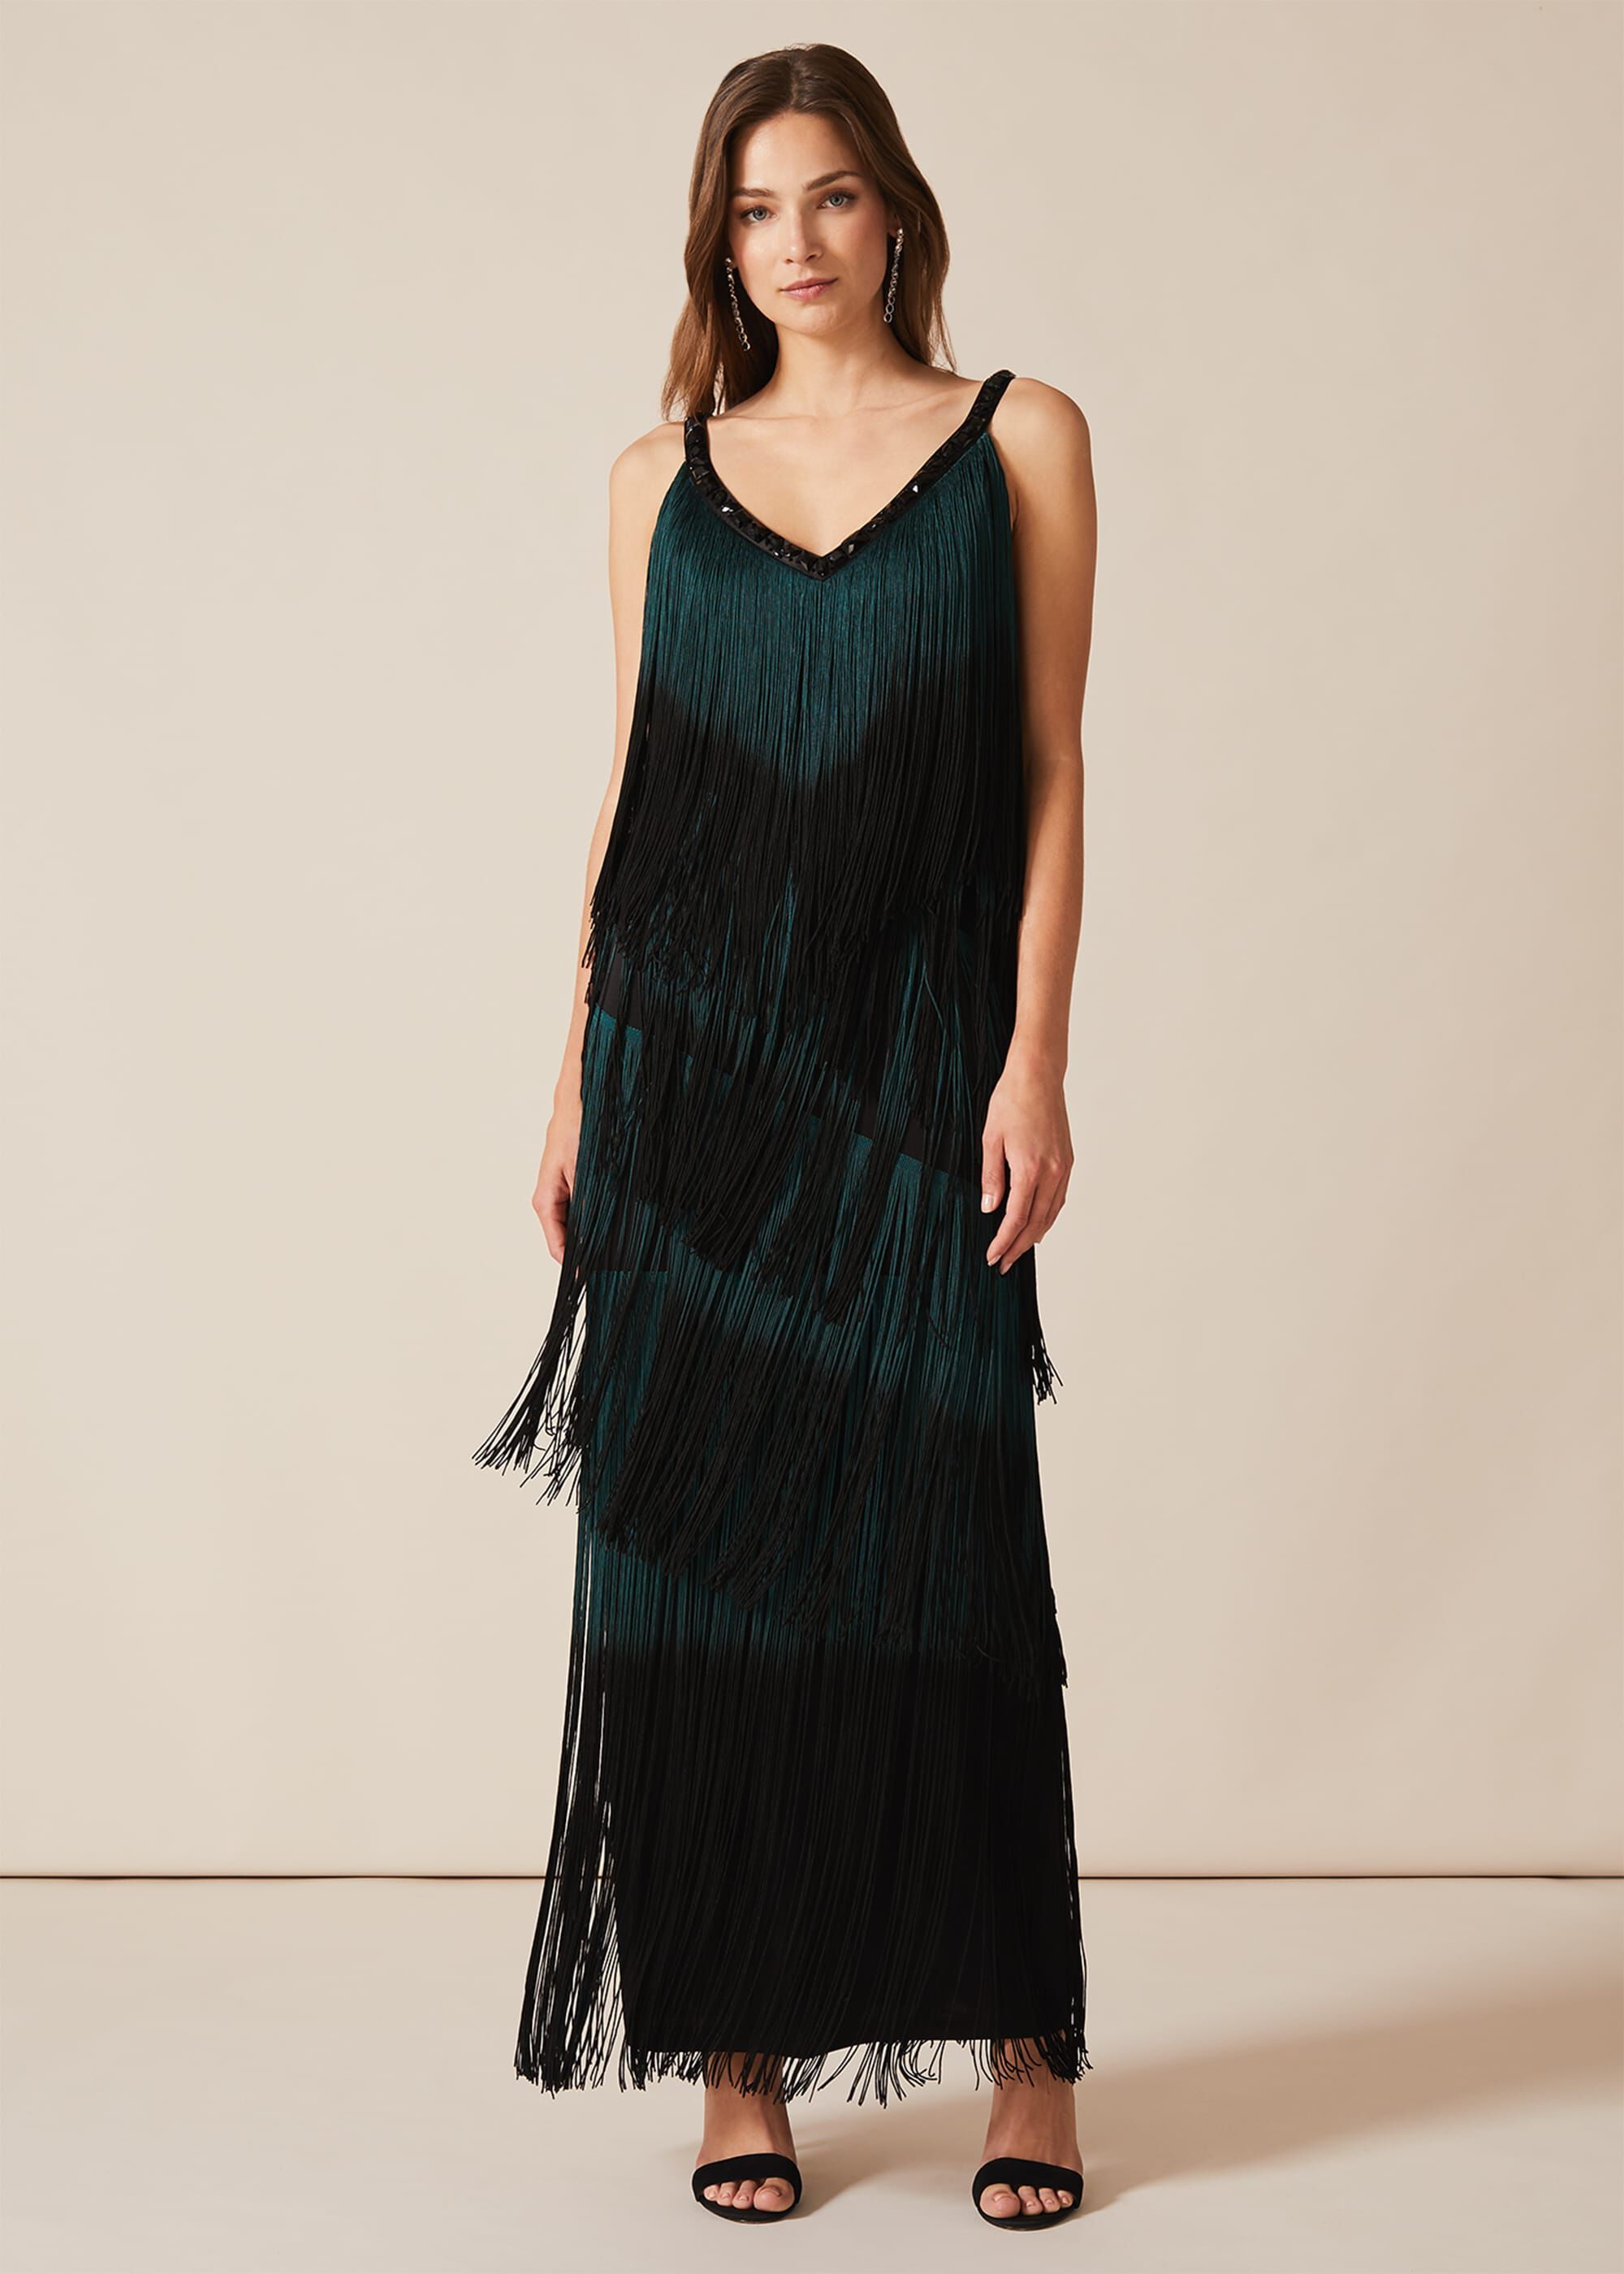 Phase Eight Tina Tassel Dress, Black, Maxi, Occasion Dress